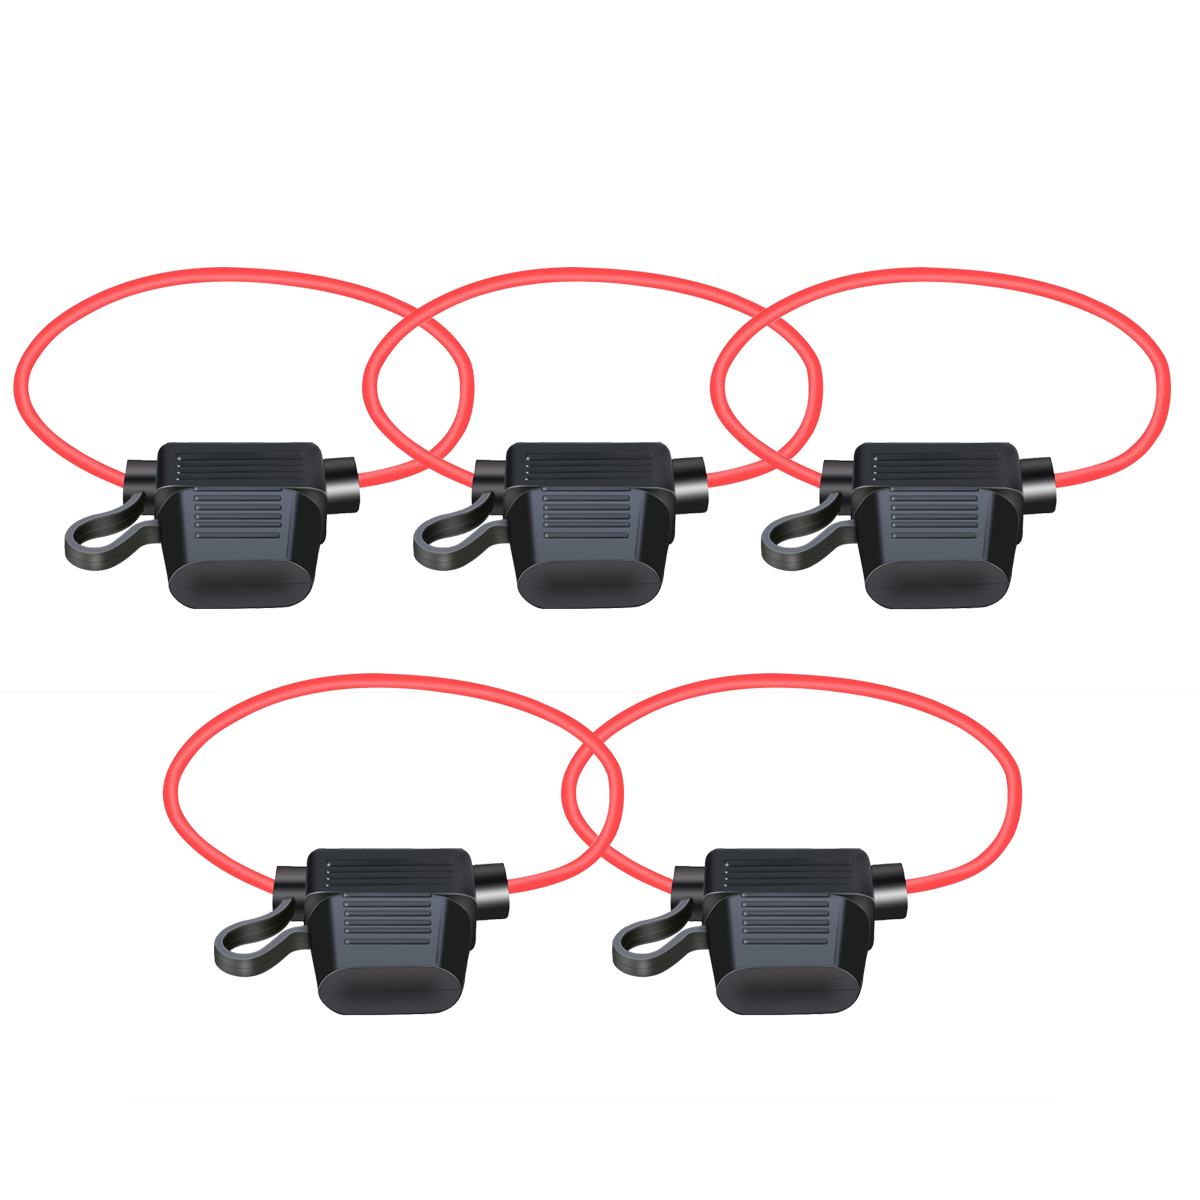 5-pack 12AWG ATC/ATO 30AMP Car Boat Truck Automotive Water-Resistant Inline Fuse Holder Blade